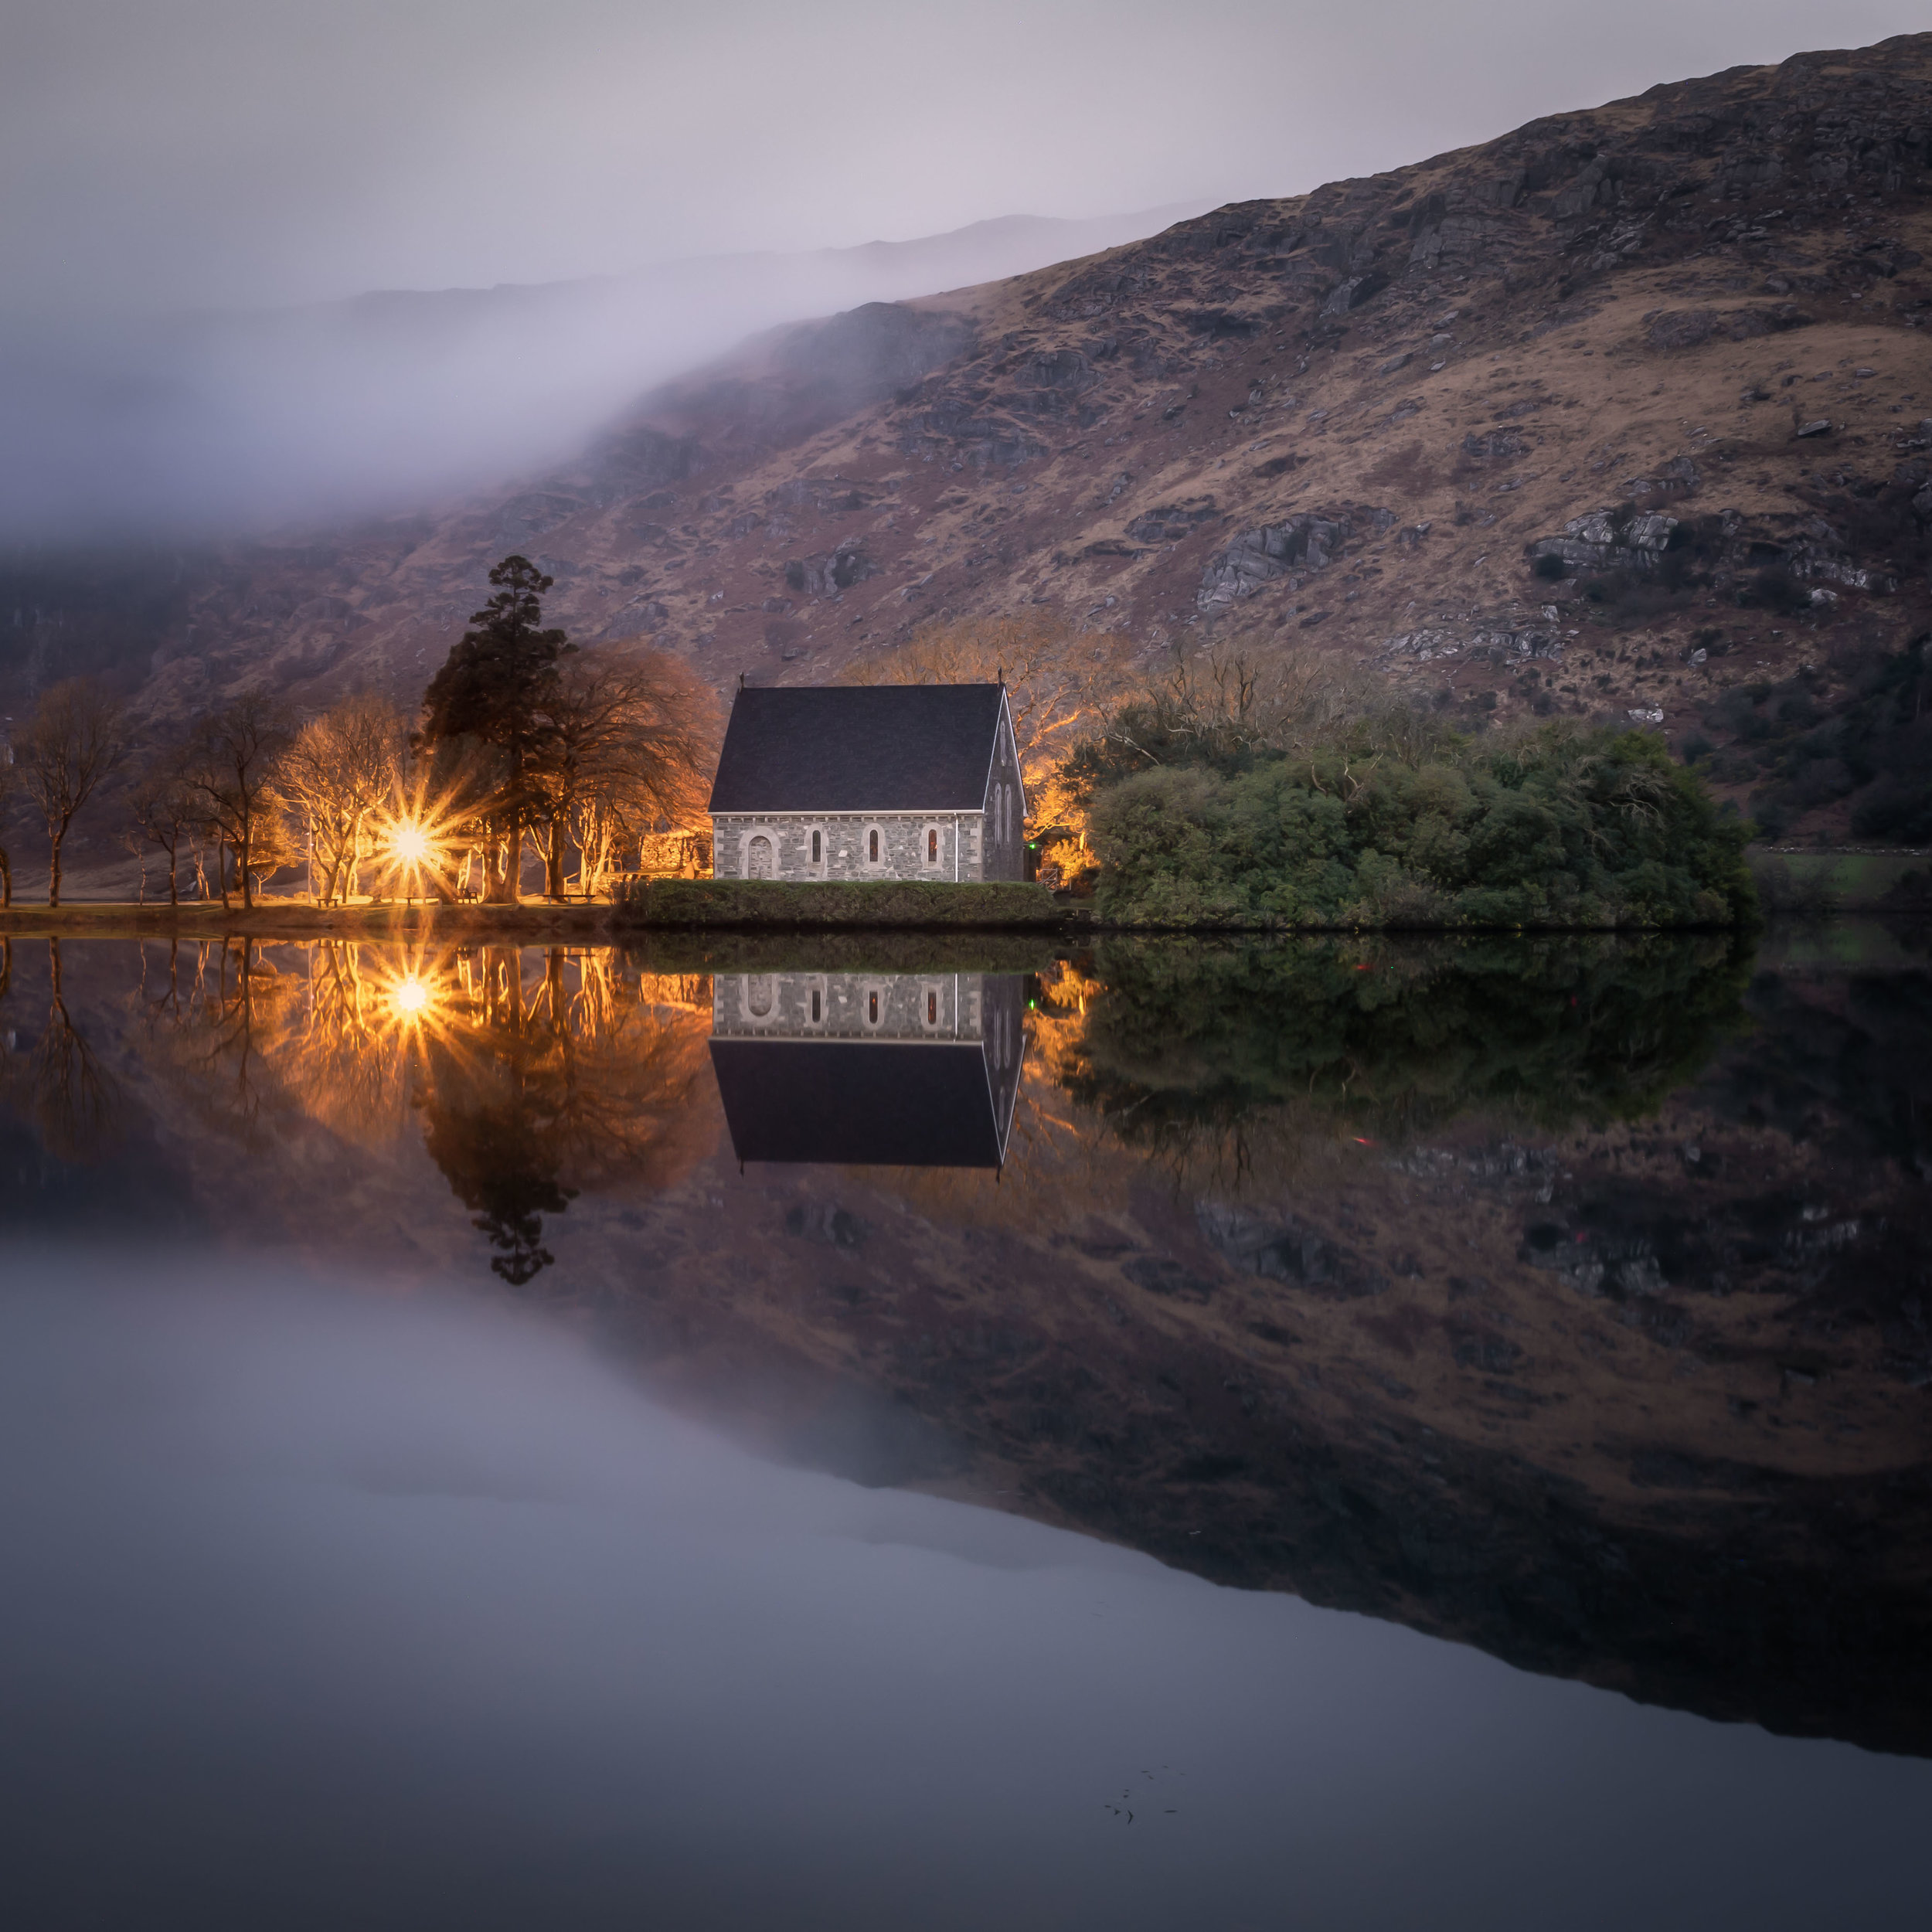 I used the live bulb mode on the Em1 Mk2 to help expose this blue hour shot